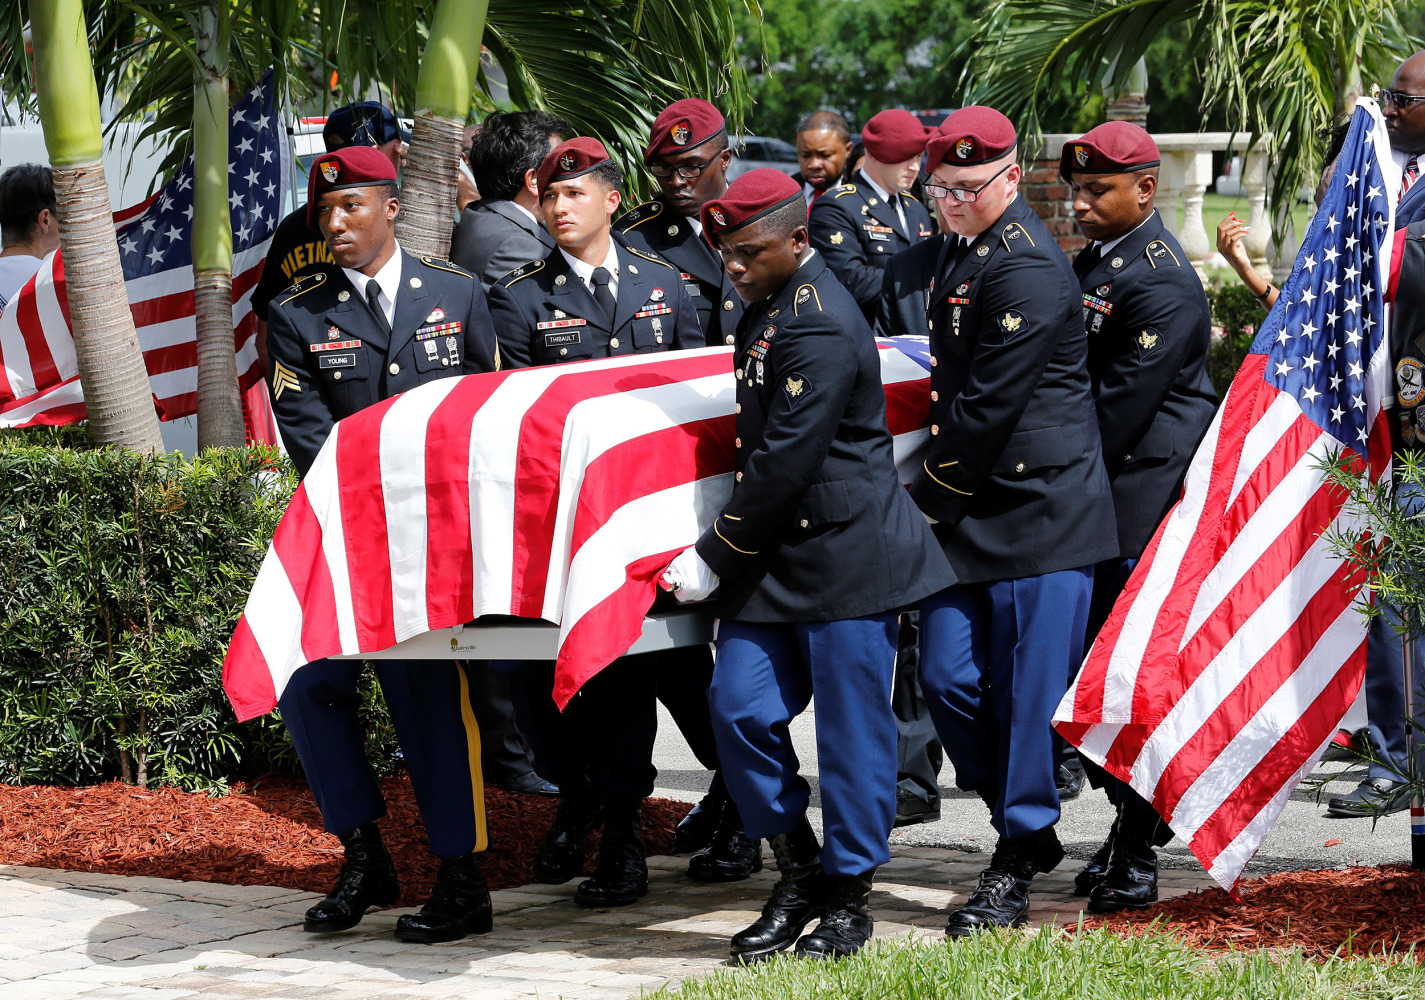 Funeral Held for Sgt La David Johnson Sol r Killed in Niger